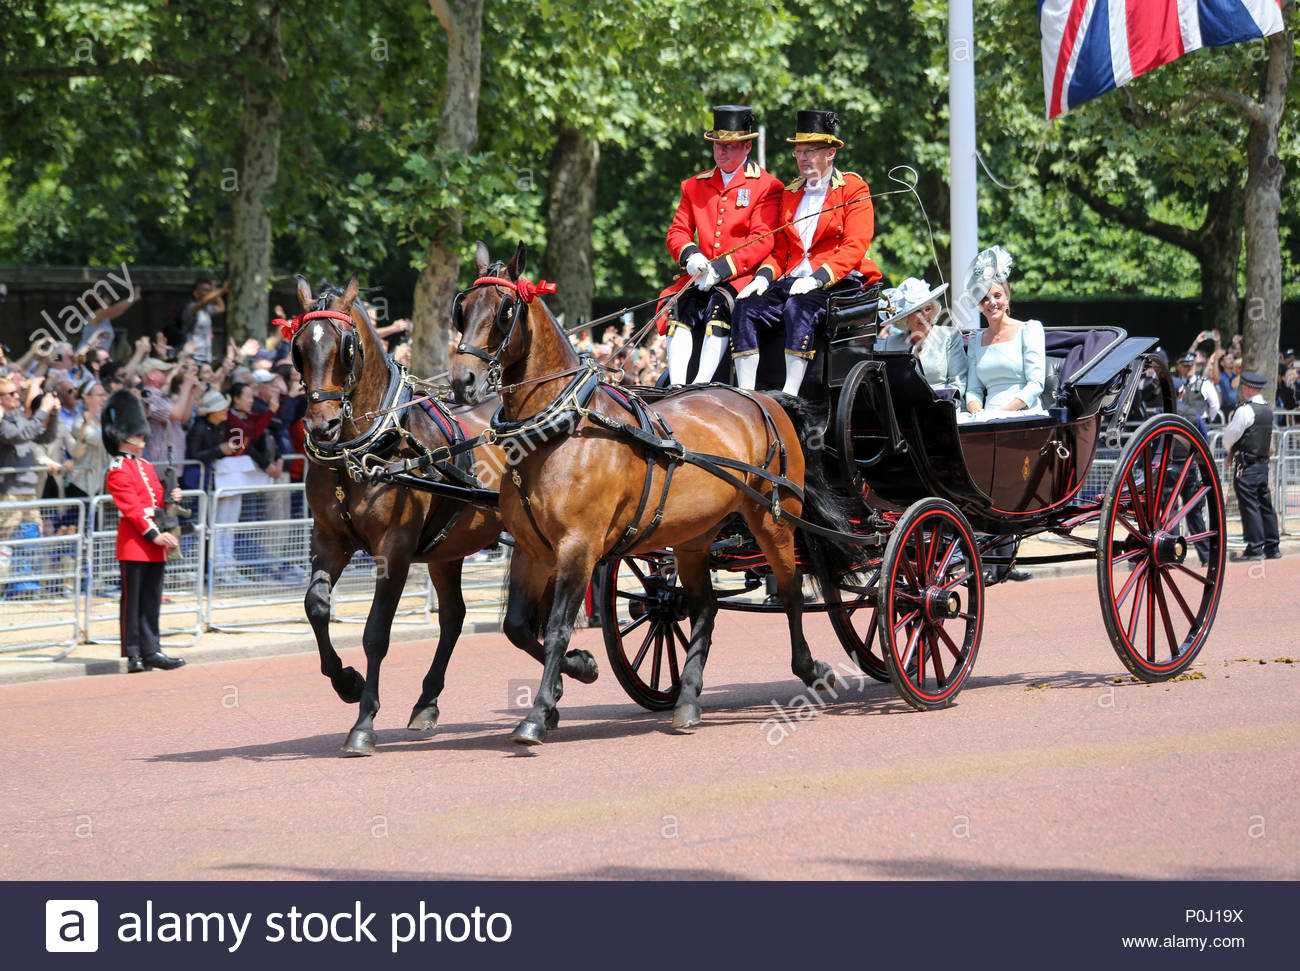 London, UK. 9th June, 2018. Camilla, Duchess of Cornwall & Catherine, Duchess of Cambridge in horse-drawn carriage travelling along The Mall. The 2018 Trooping the Colour / Queen's Birthday Parade. Credit: Katie Chan/Alamy Live News Stock Photo